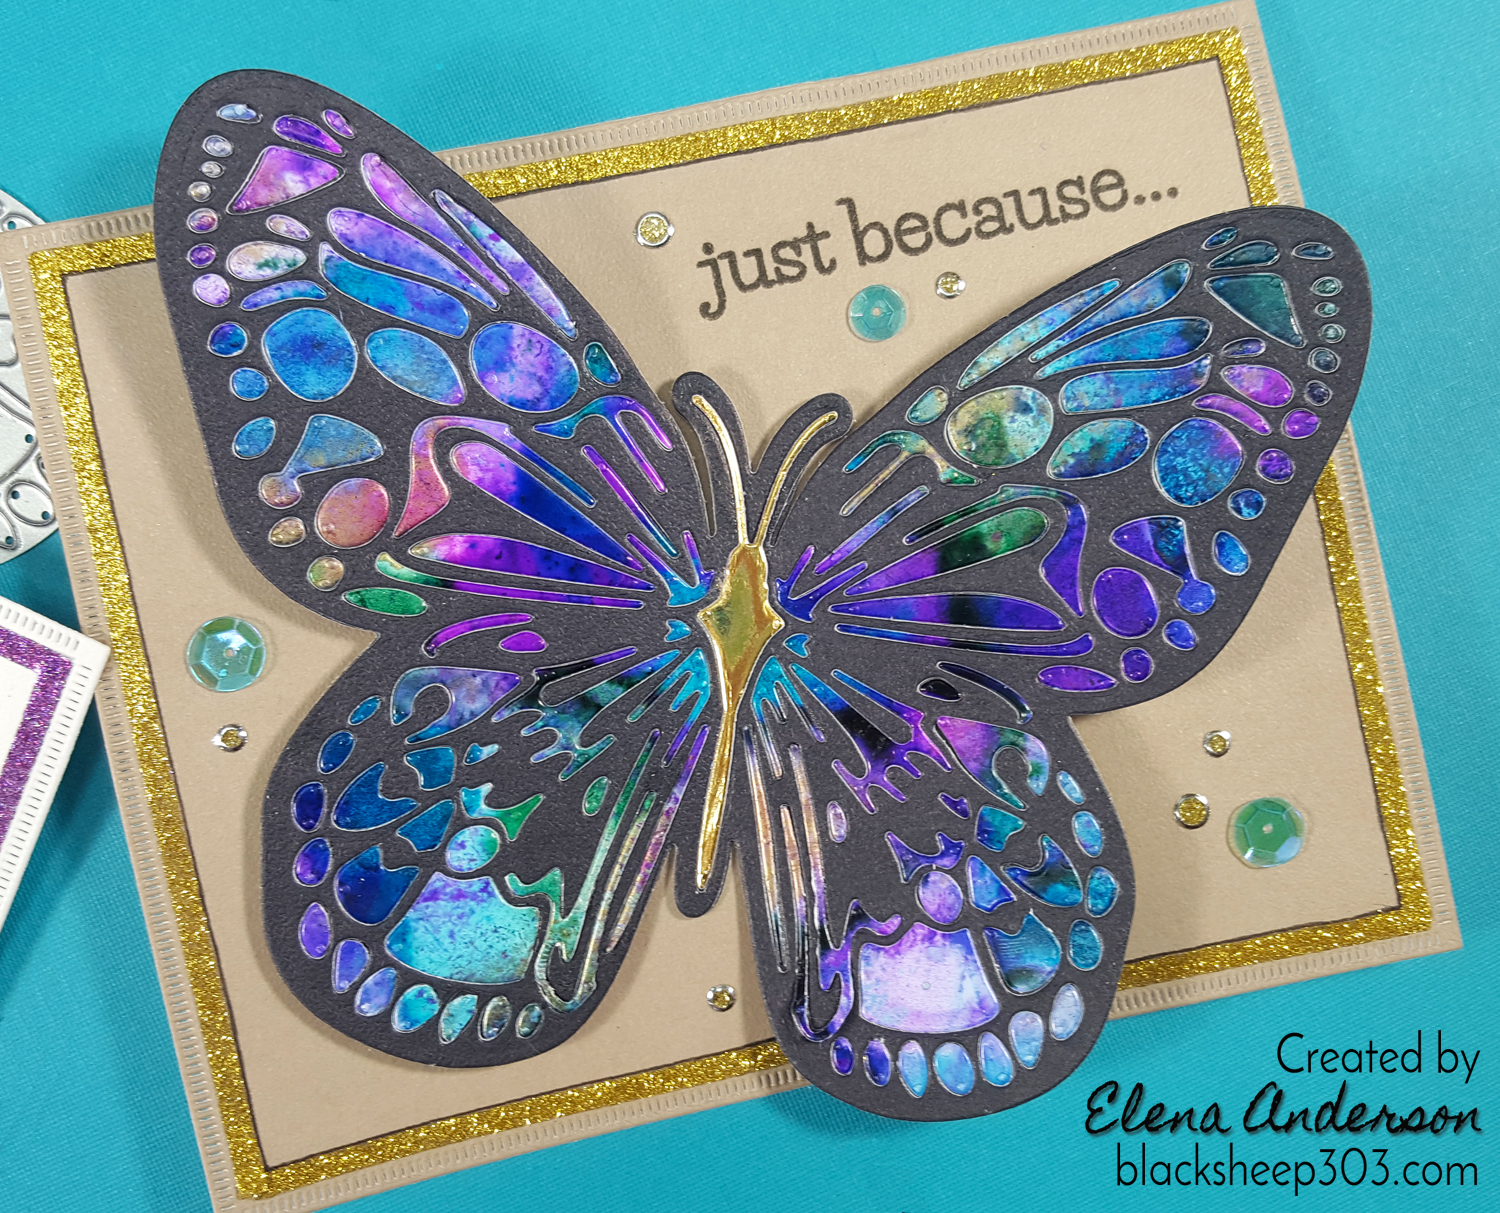 Forum on this topic: Butterfly Alcohol Pad, butterfly-alcohol-pad/